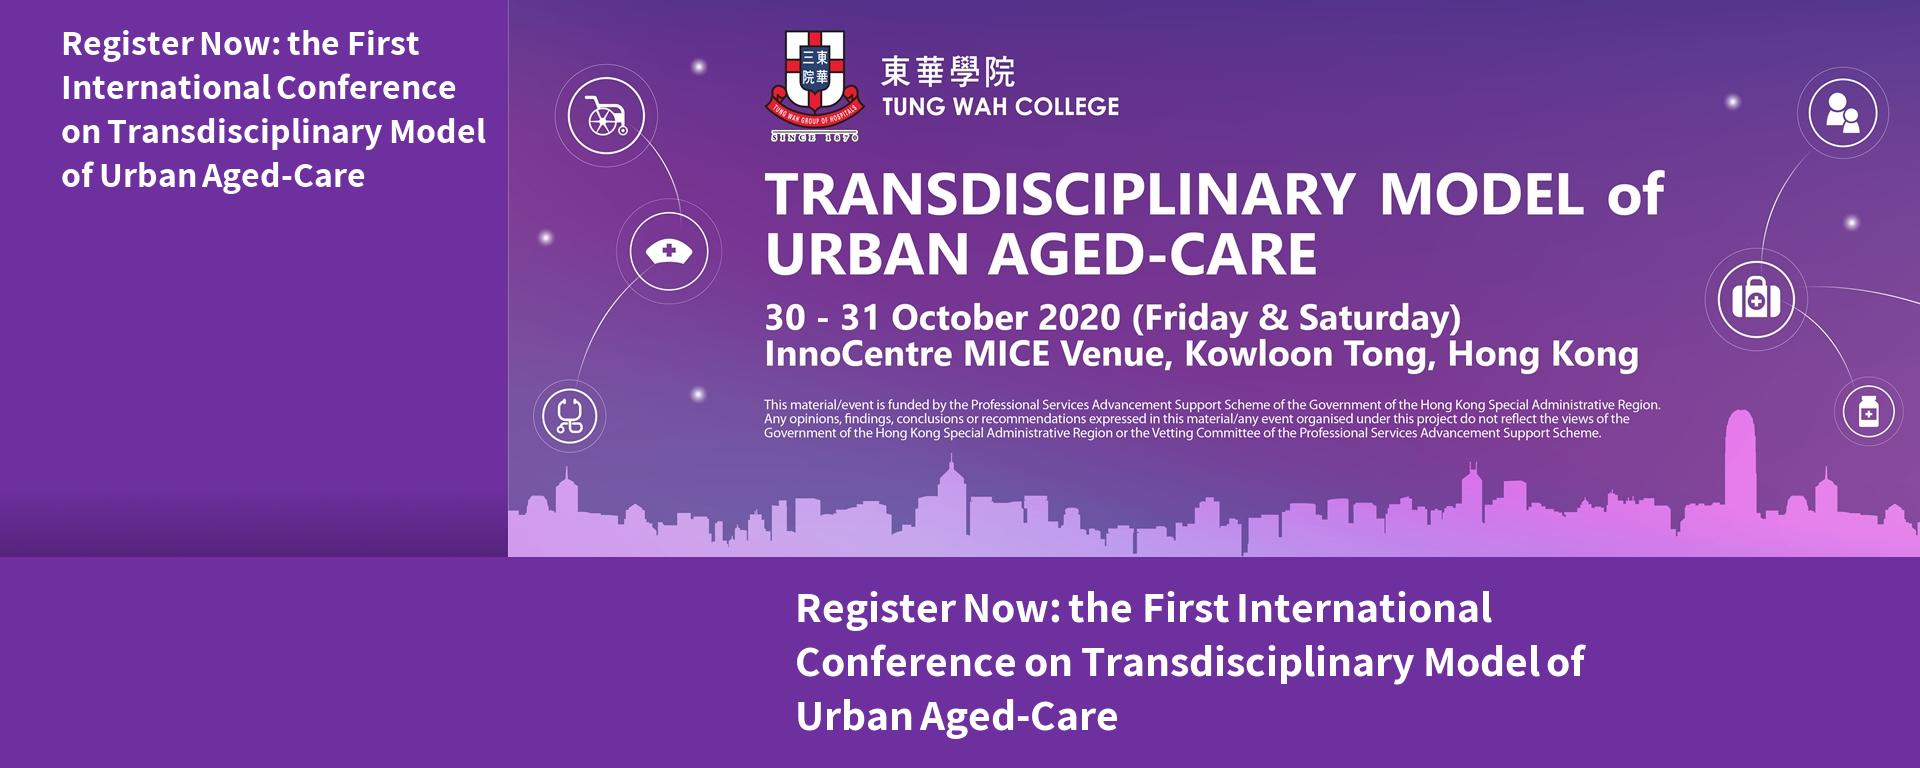 Register Now: the First International Conference on Transdisciplinary Model of Urban Aged-Care